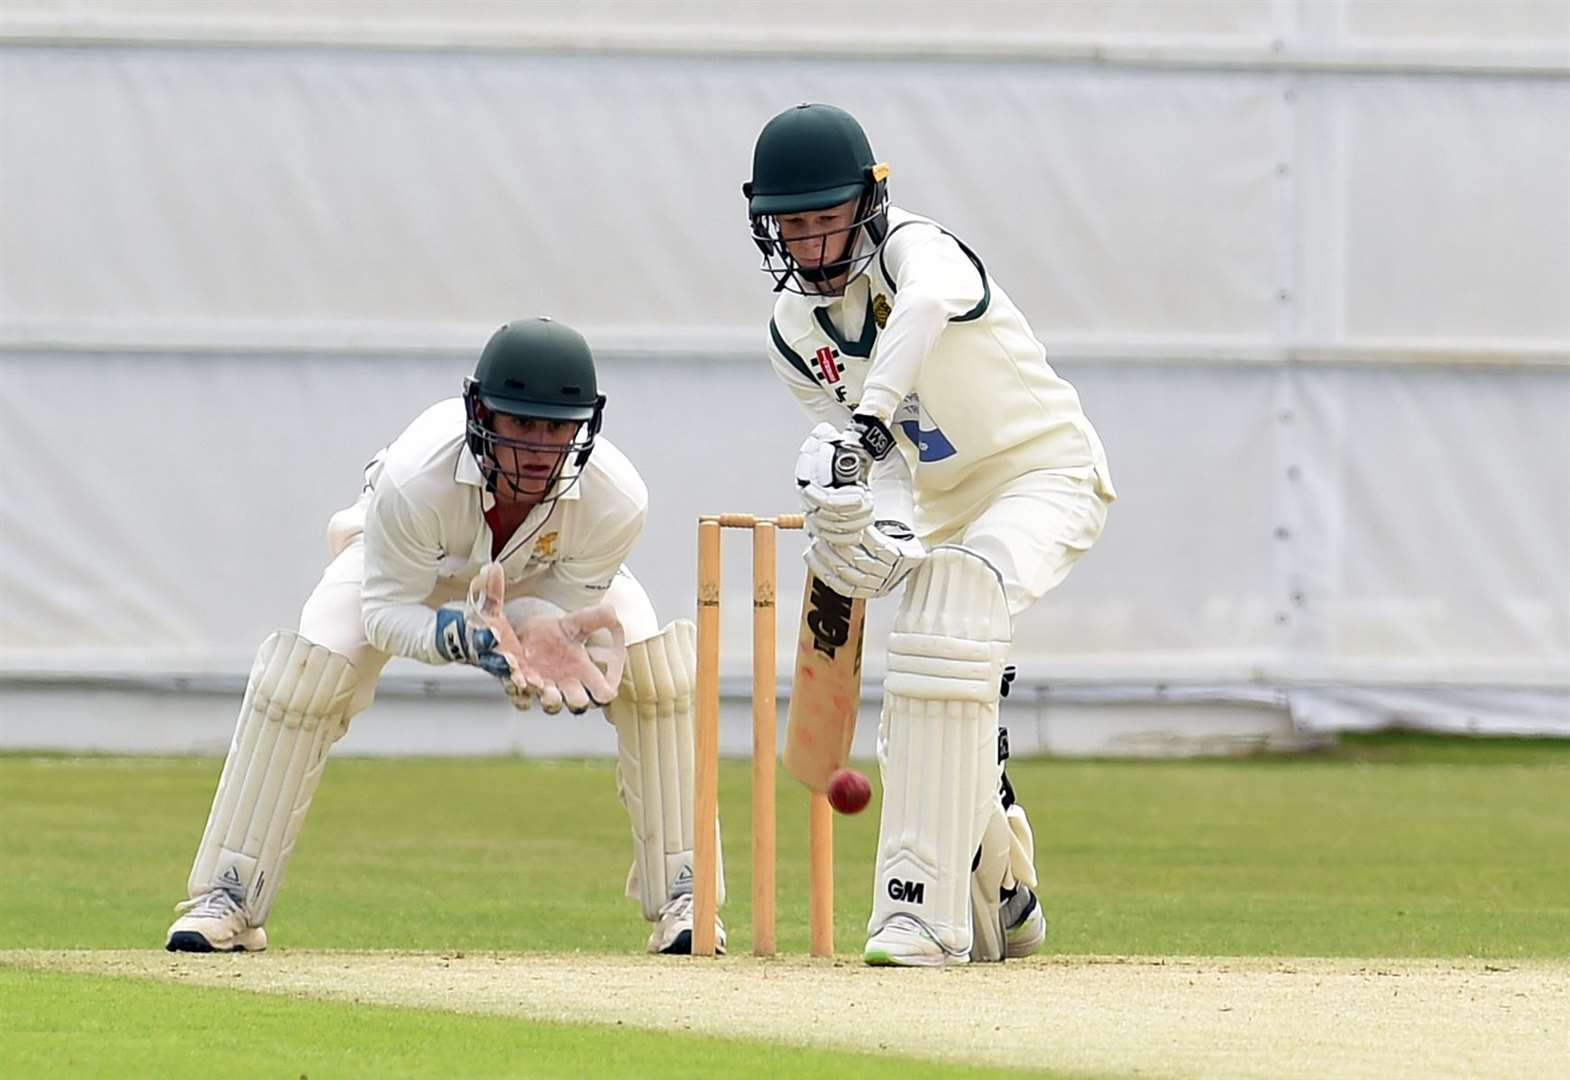 Grantham CC get two results from four matches due to weather